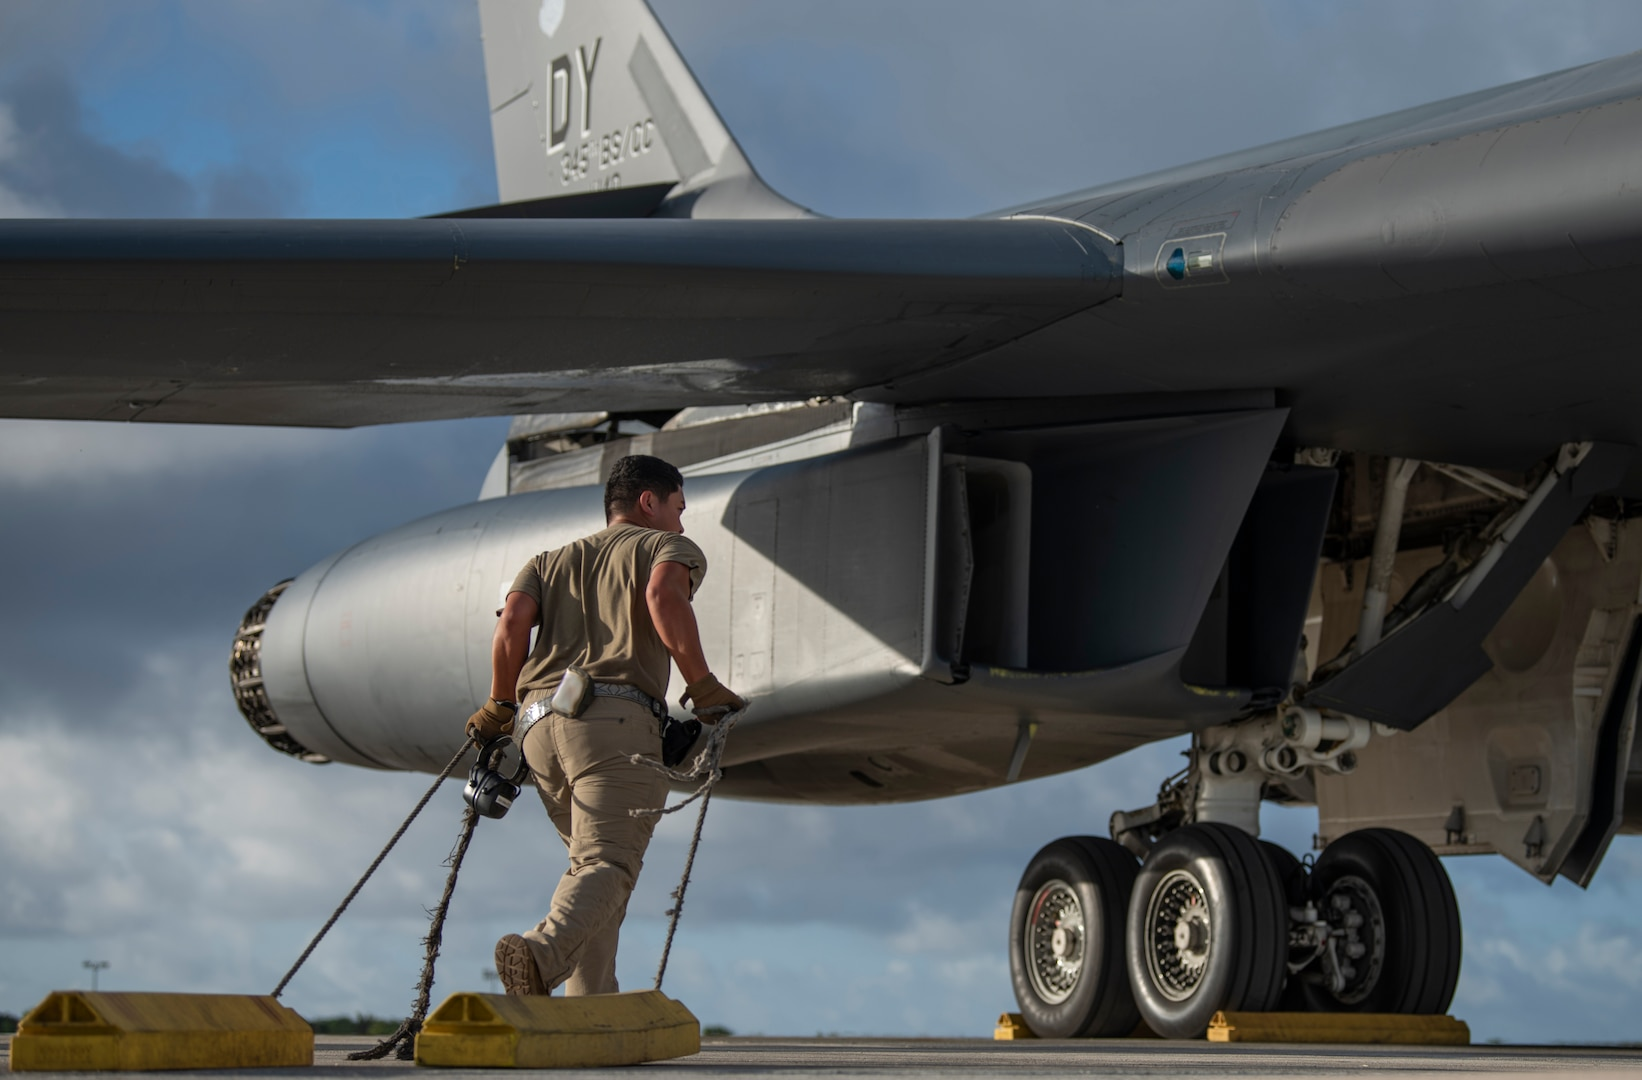 Senior Airman Jae Sajonas, 9th Expeditionary Bomb Squadron B-1B Lancer assistant crew chief, drags wheel chocks on the flightline at Andersen Air Force Base, Guam, May 14, 2020. Chocks prevent the aircraft from moving or swaying. Approximately 200 Airmen and four B-1s assigned to the 7th Bomb Wing at Dyess AFB, Texas, deployed to support Pacific Air Forces' training efforts with allies, partners and joint forces; and strategic deterrence missions. (U.S. Air Force photo illustration by Senior Airman River Bruce)